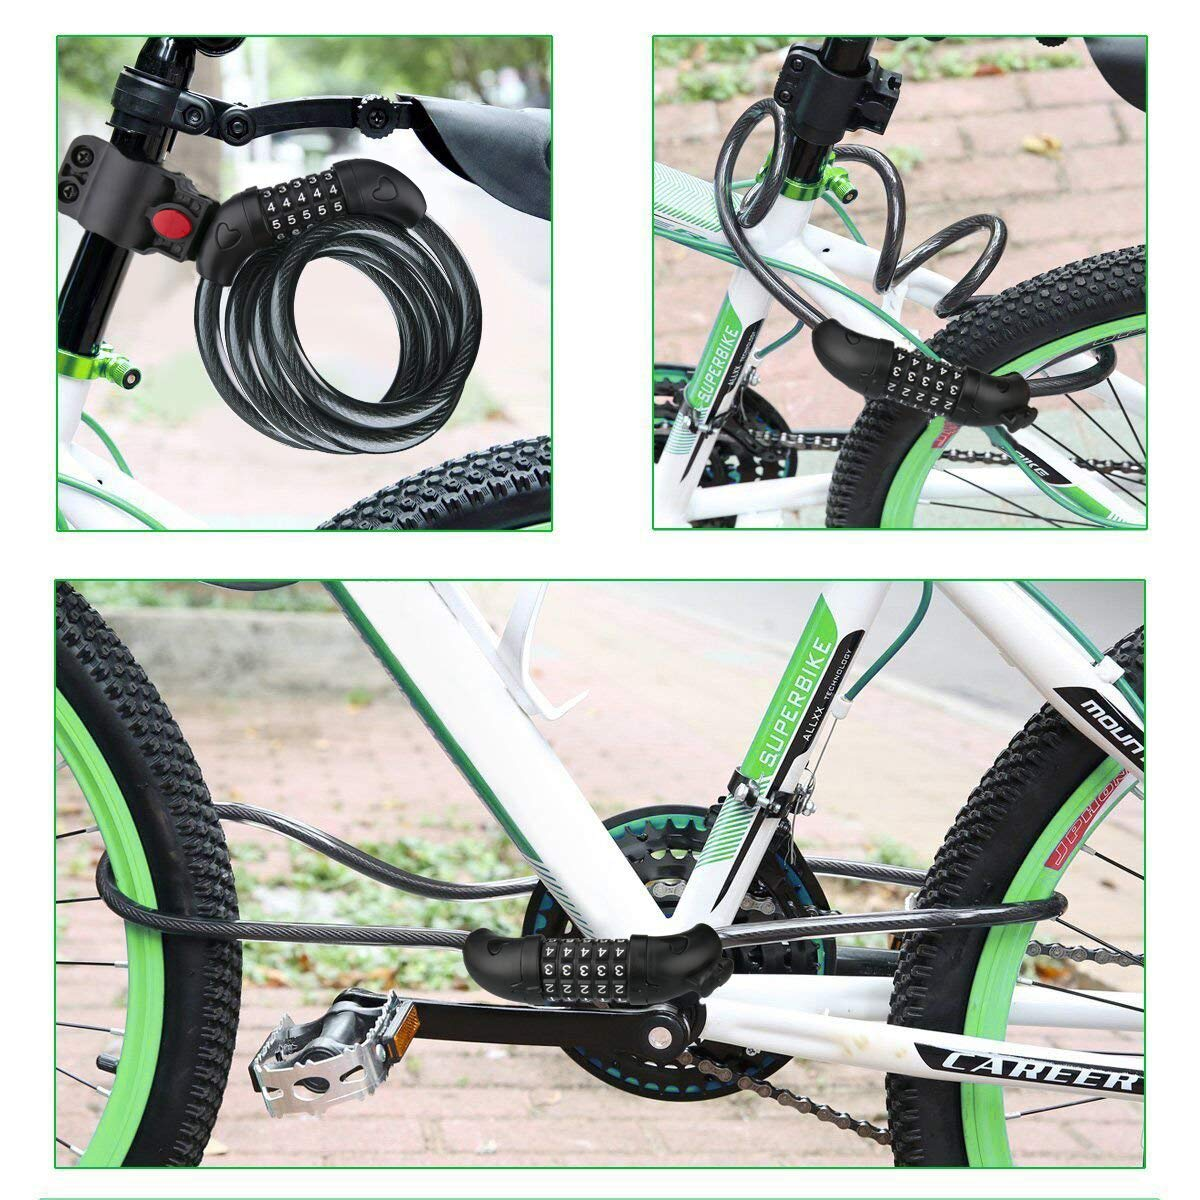 Bike Lock Cable Security Cable Combination Bicycle Lock Chain Lock 5-Digit Resettable Number Mounting Bracket Bicycle Scooter Outdoors Gvoo Bike Lock